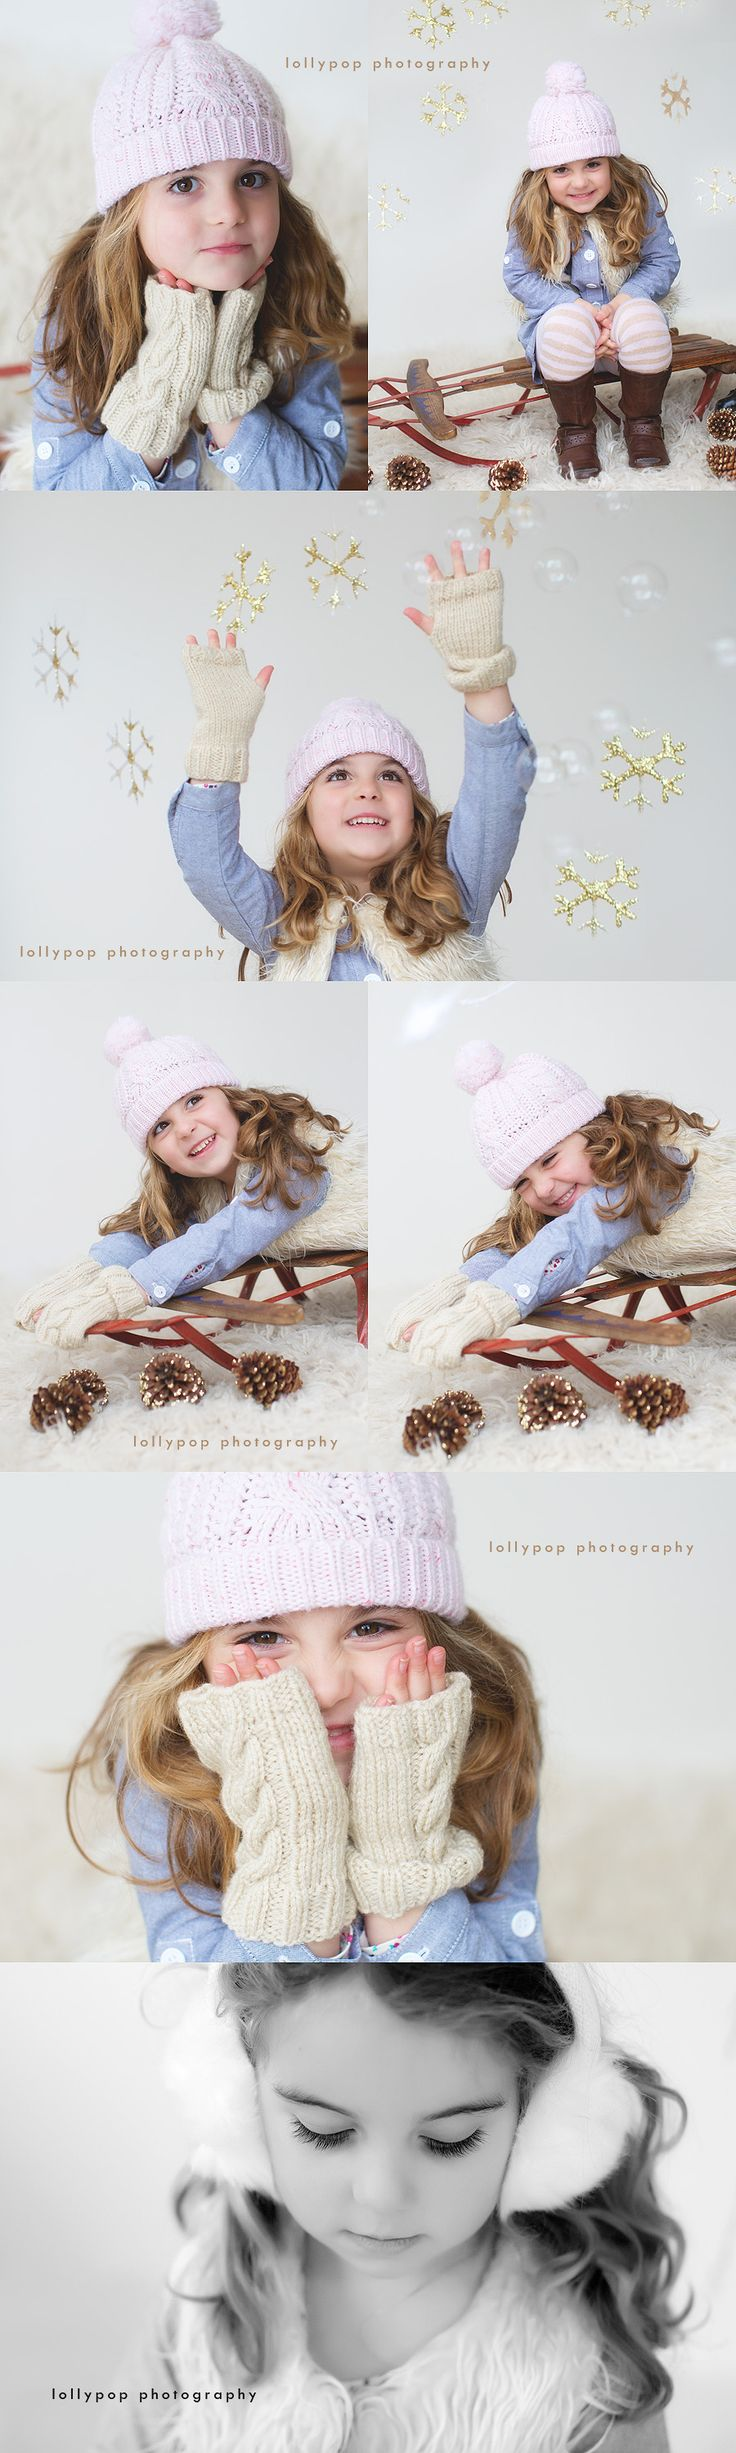 Winter mini sessions are also available in the studio! Studio sessions are in the mornings and outdoor sessions late afternoon. For more information on the winter mini sessions click here.